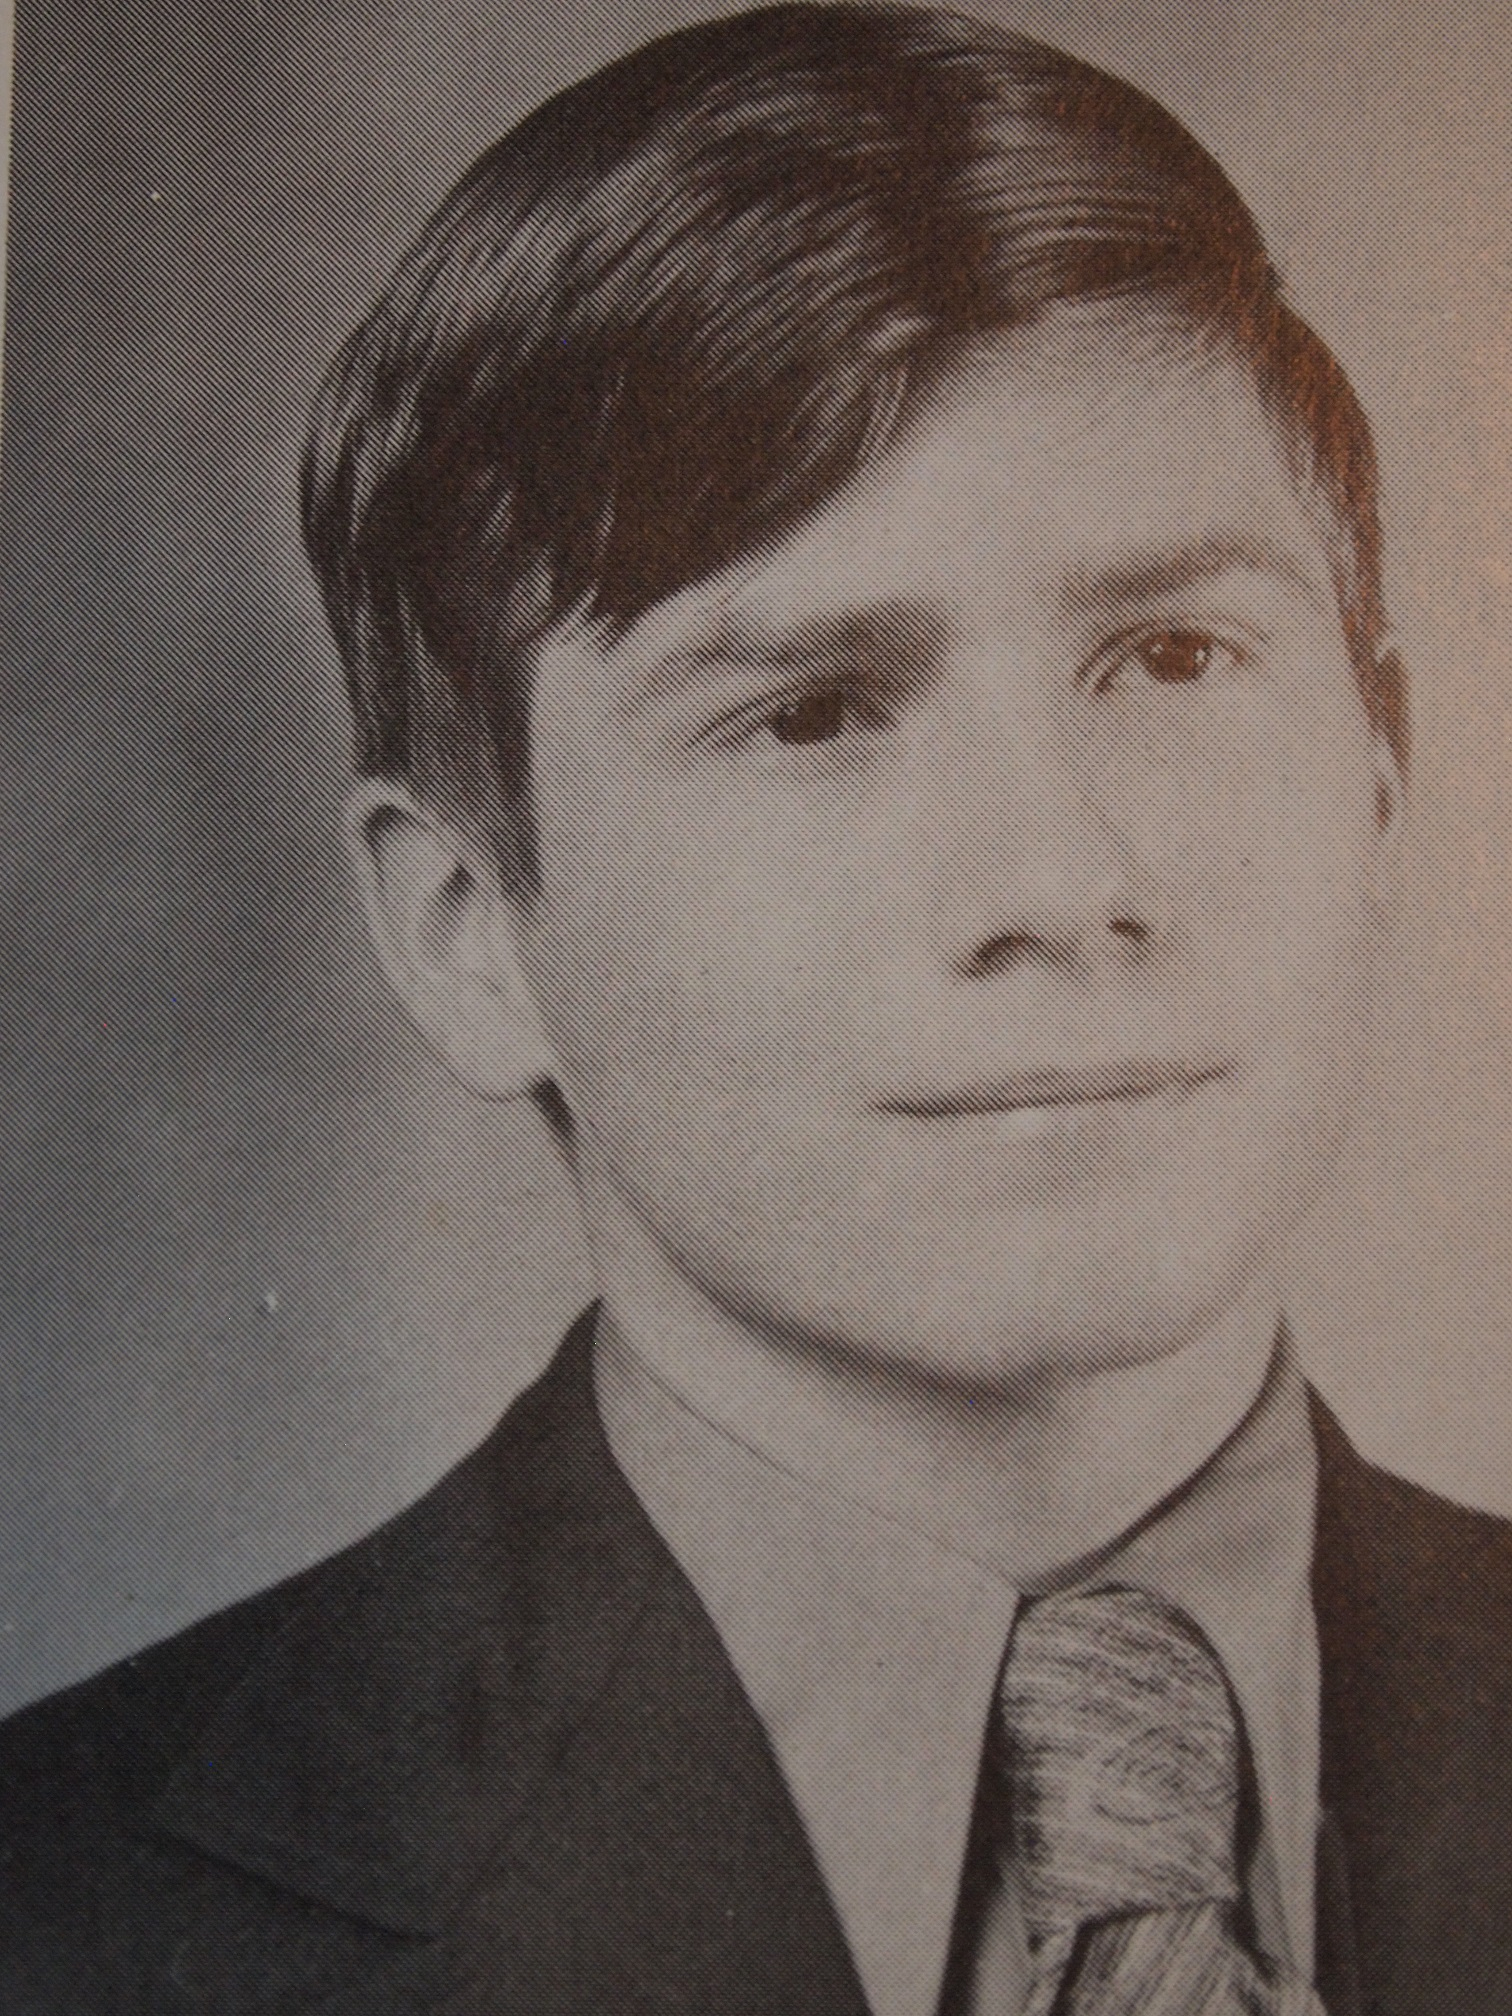 Age 17, Twelfth Grade: Shooting for Stars